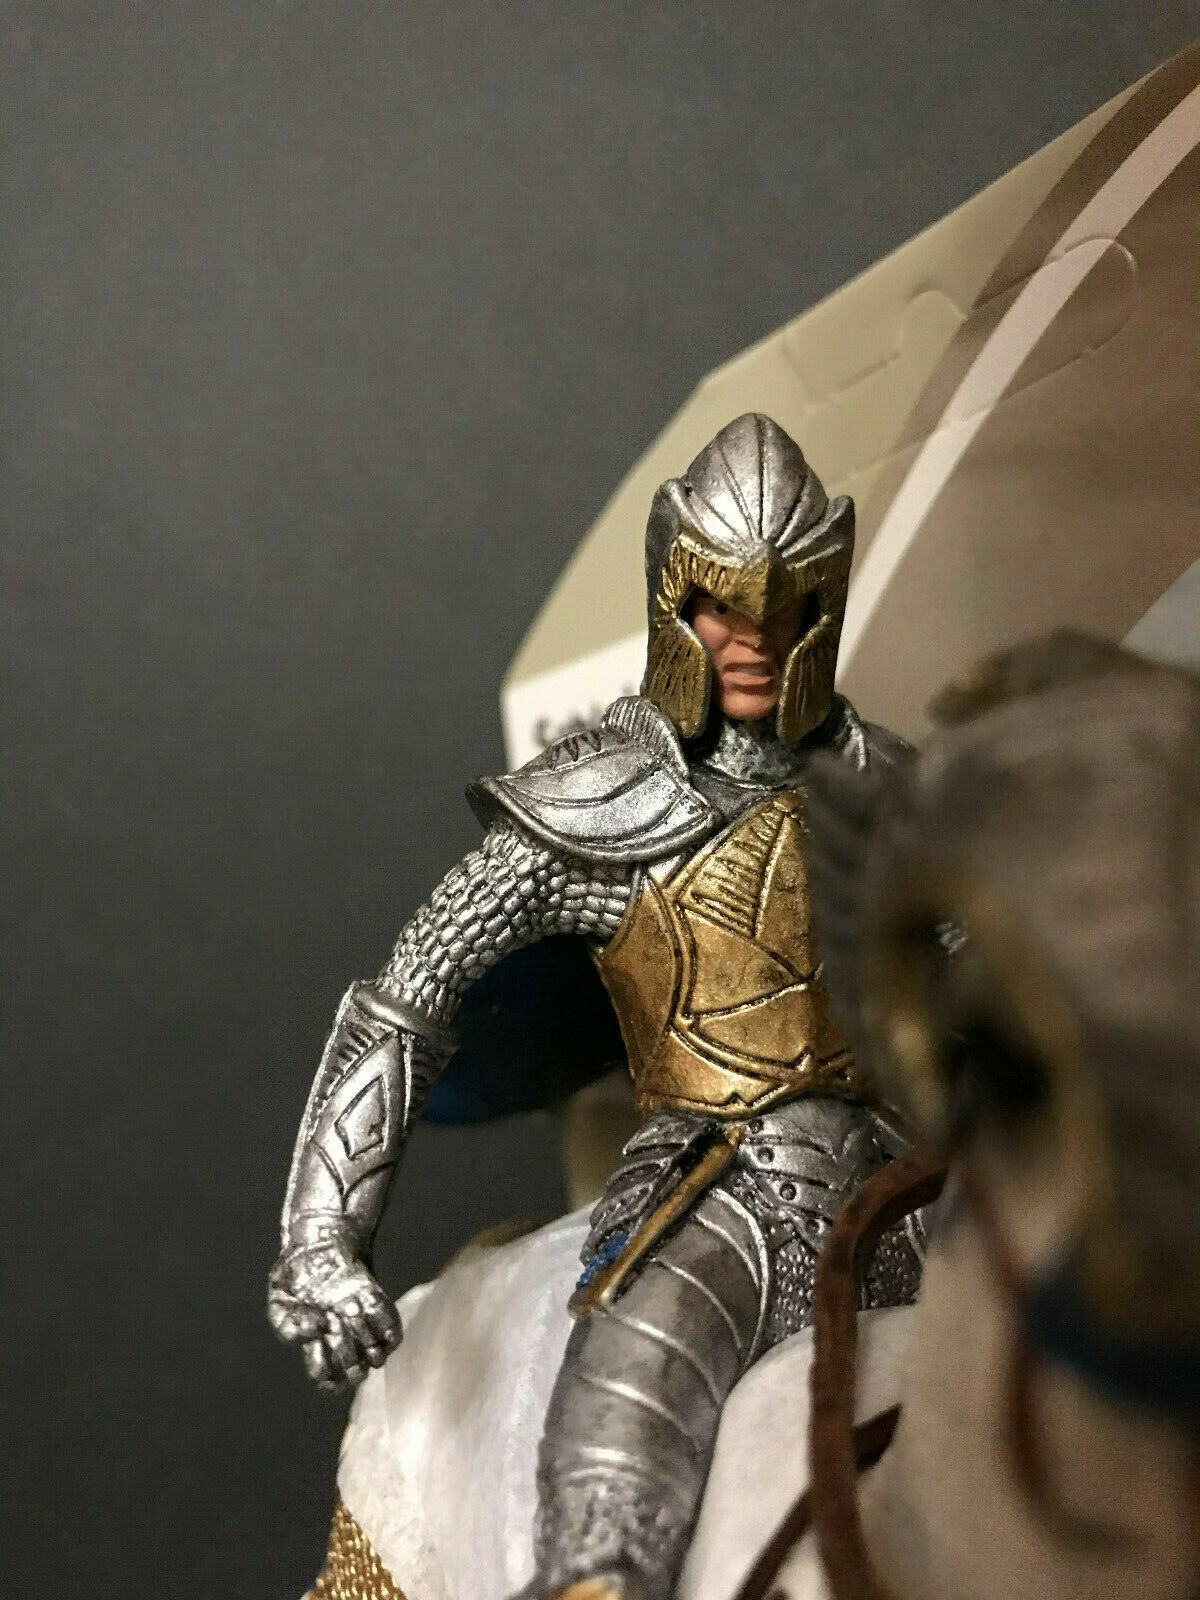 SHIPS gratuito  GRIFFIN KNIGHT on HORSE with PICK  KNIGHTS Series  D&D GRIFFON